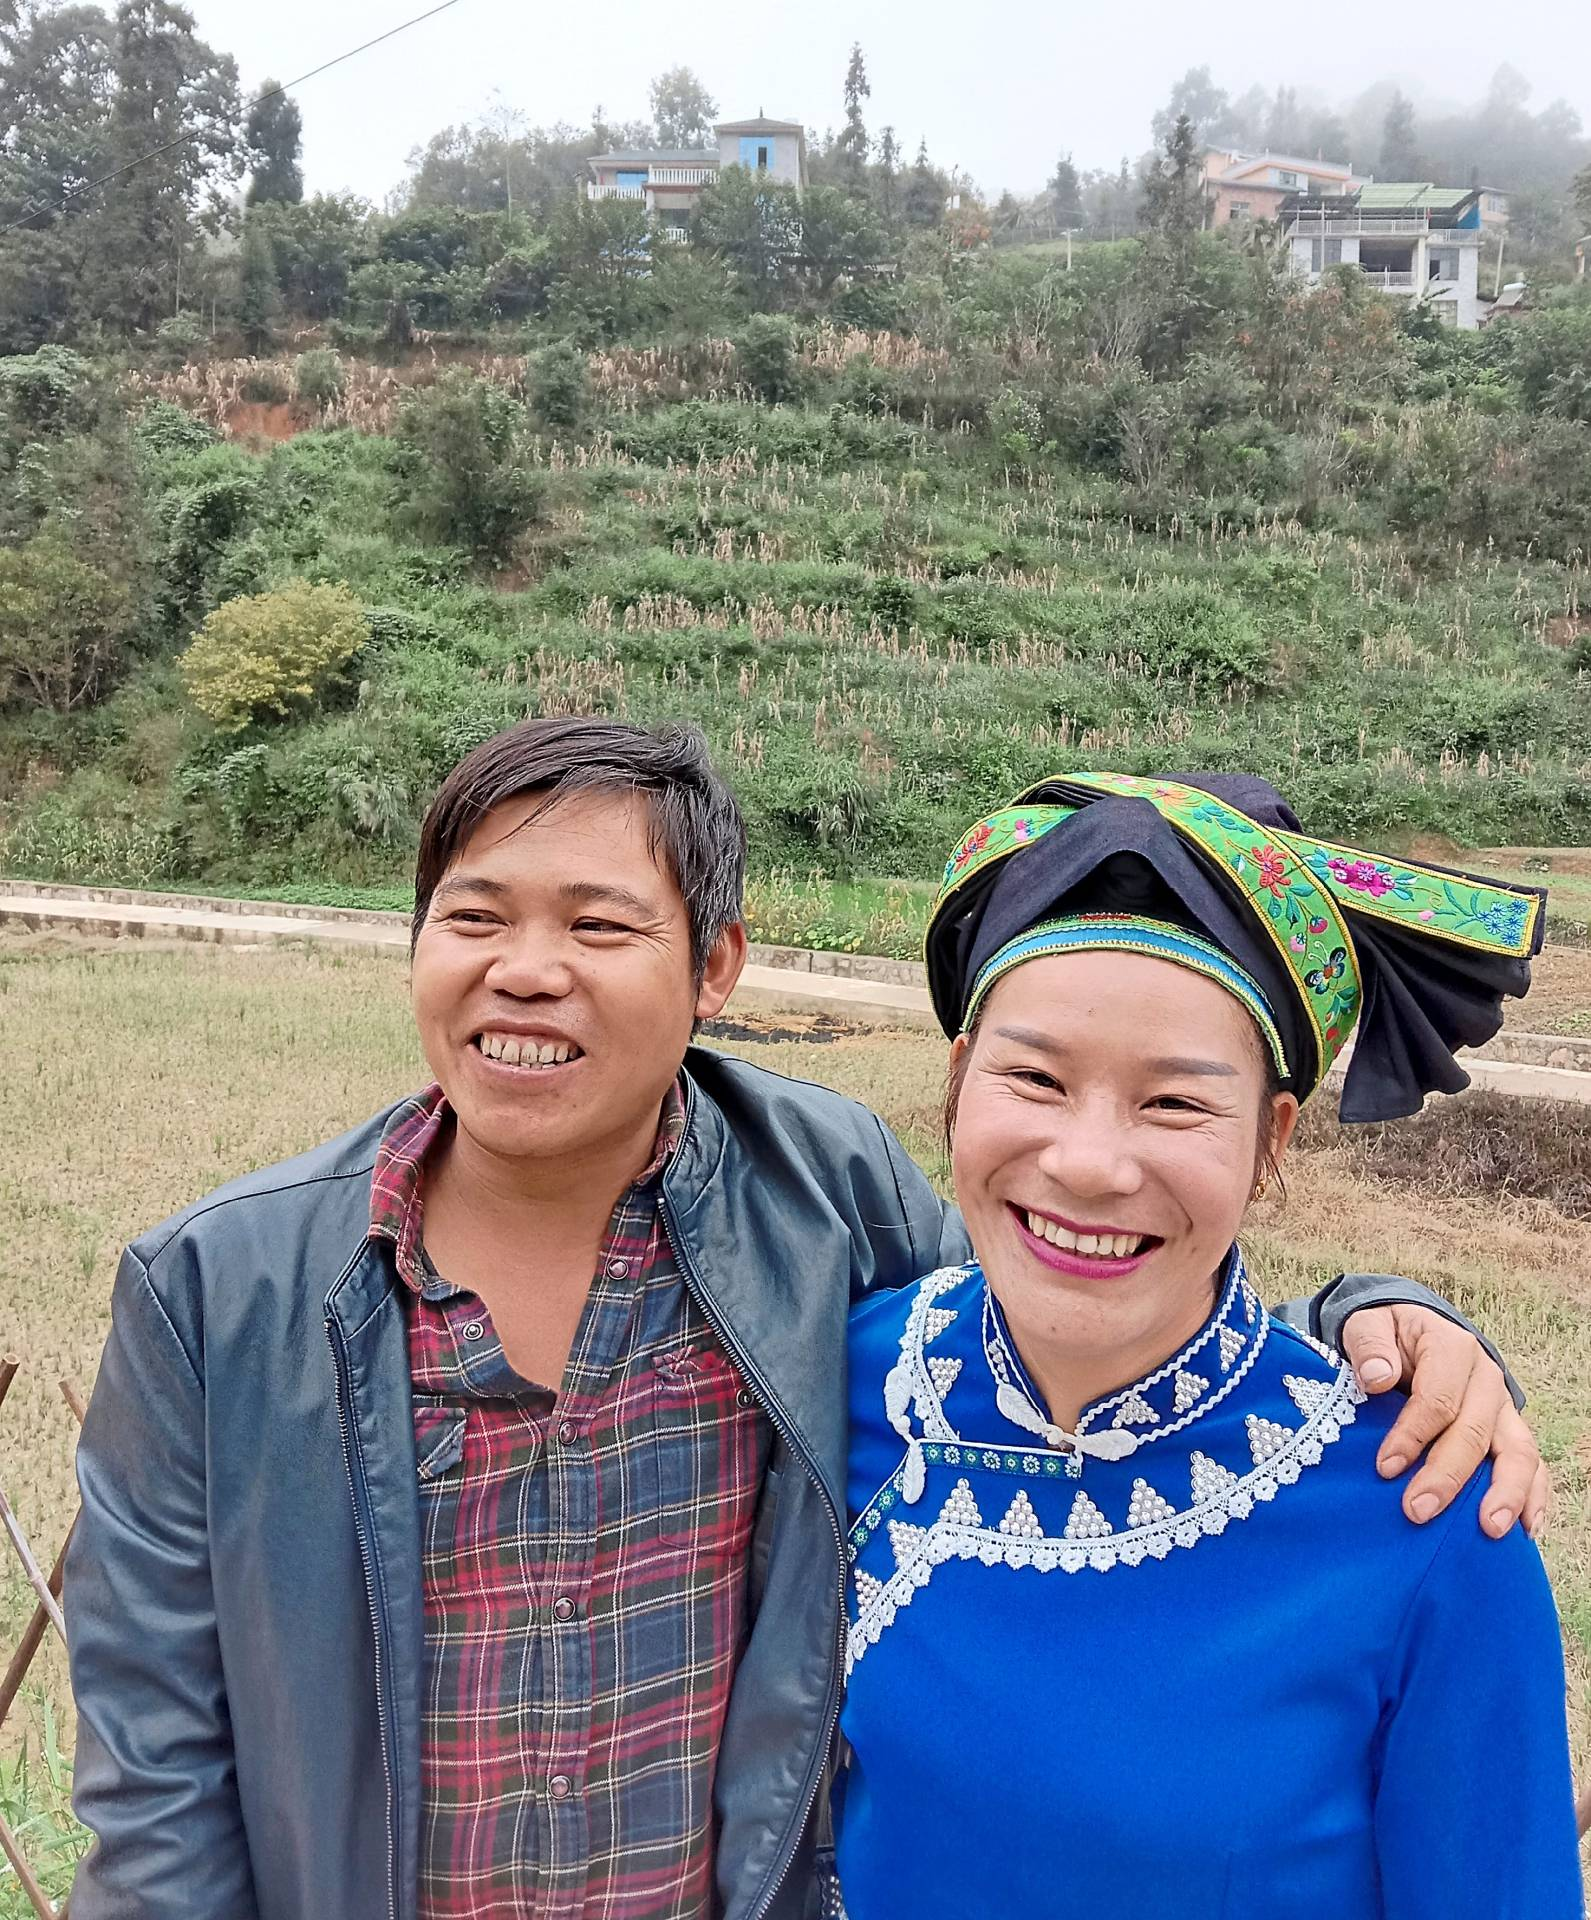 Long Kaijia, 38, a former construction worker seen here with his wife Loo Tze Yue, says mushroom farming in Nanyou, a village in Malipo county, has enabled him to educate his two daughters  and own a bungalow.